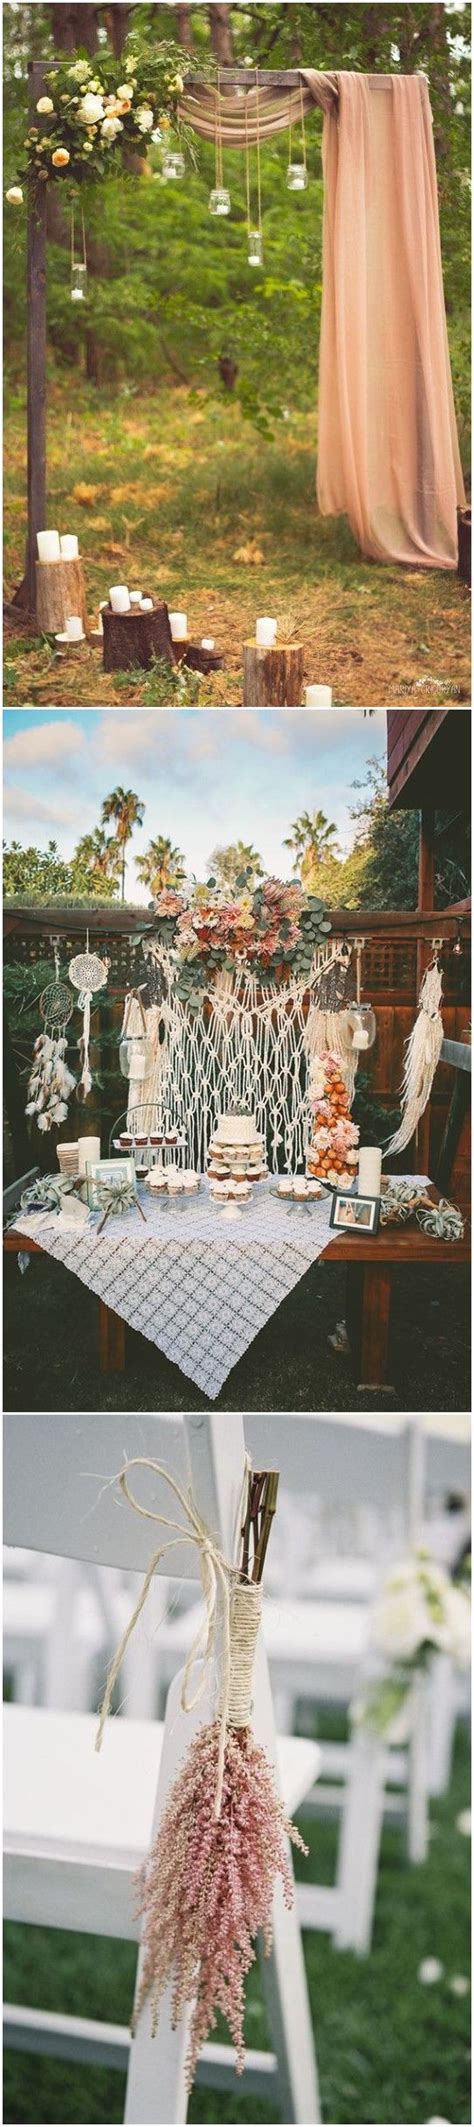 20  Gorgeous Boho Wedding Décor Ideas on Pinterest   Diy